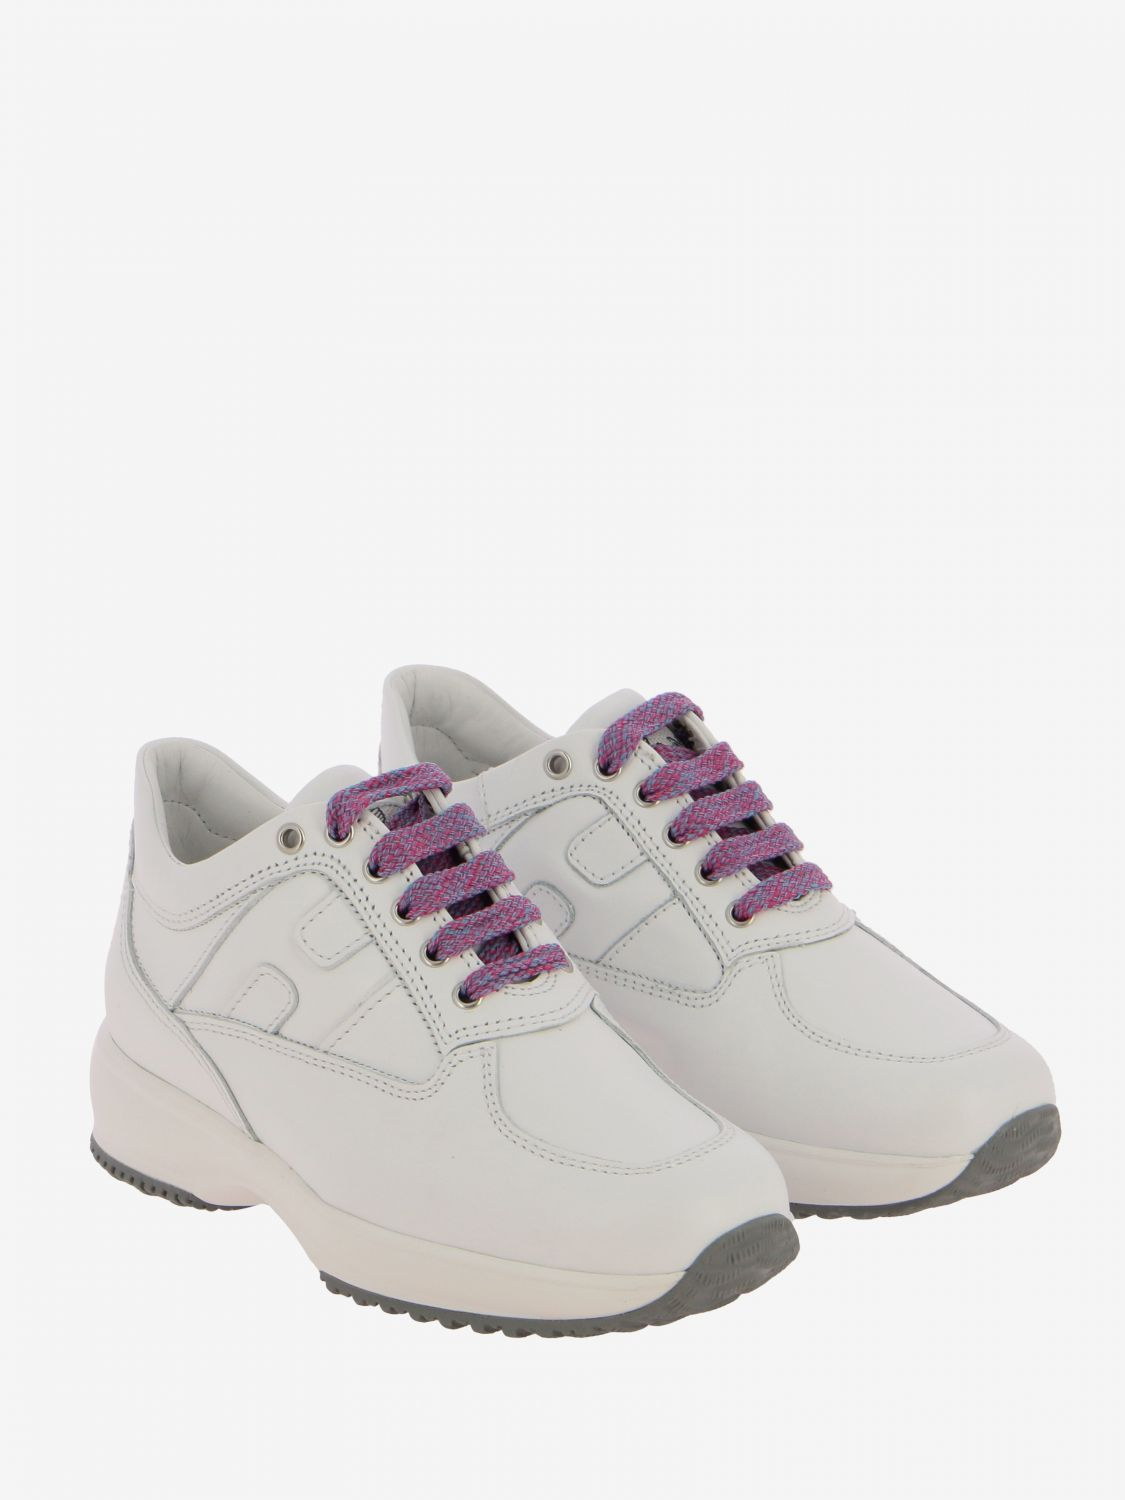 Shoes kids Hogan white 2